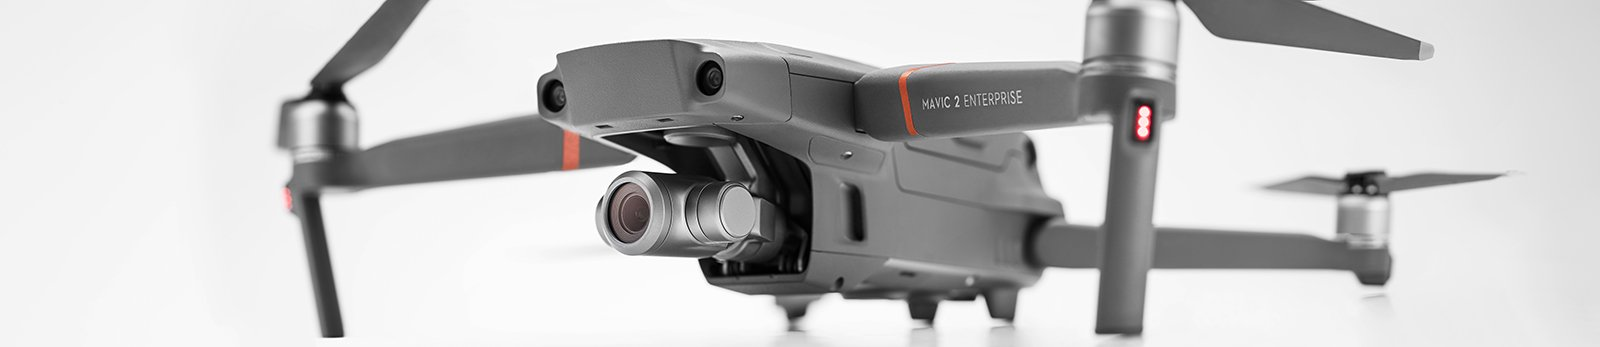 mavic enterprise zoom